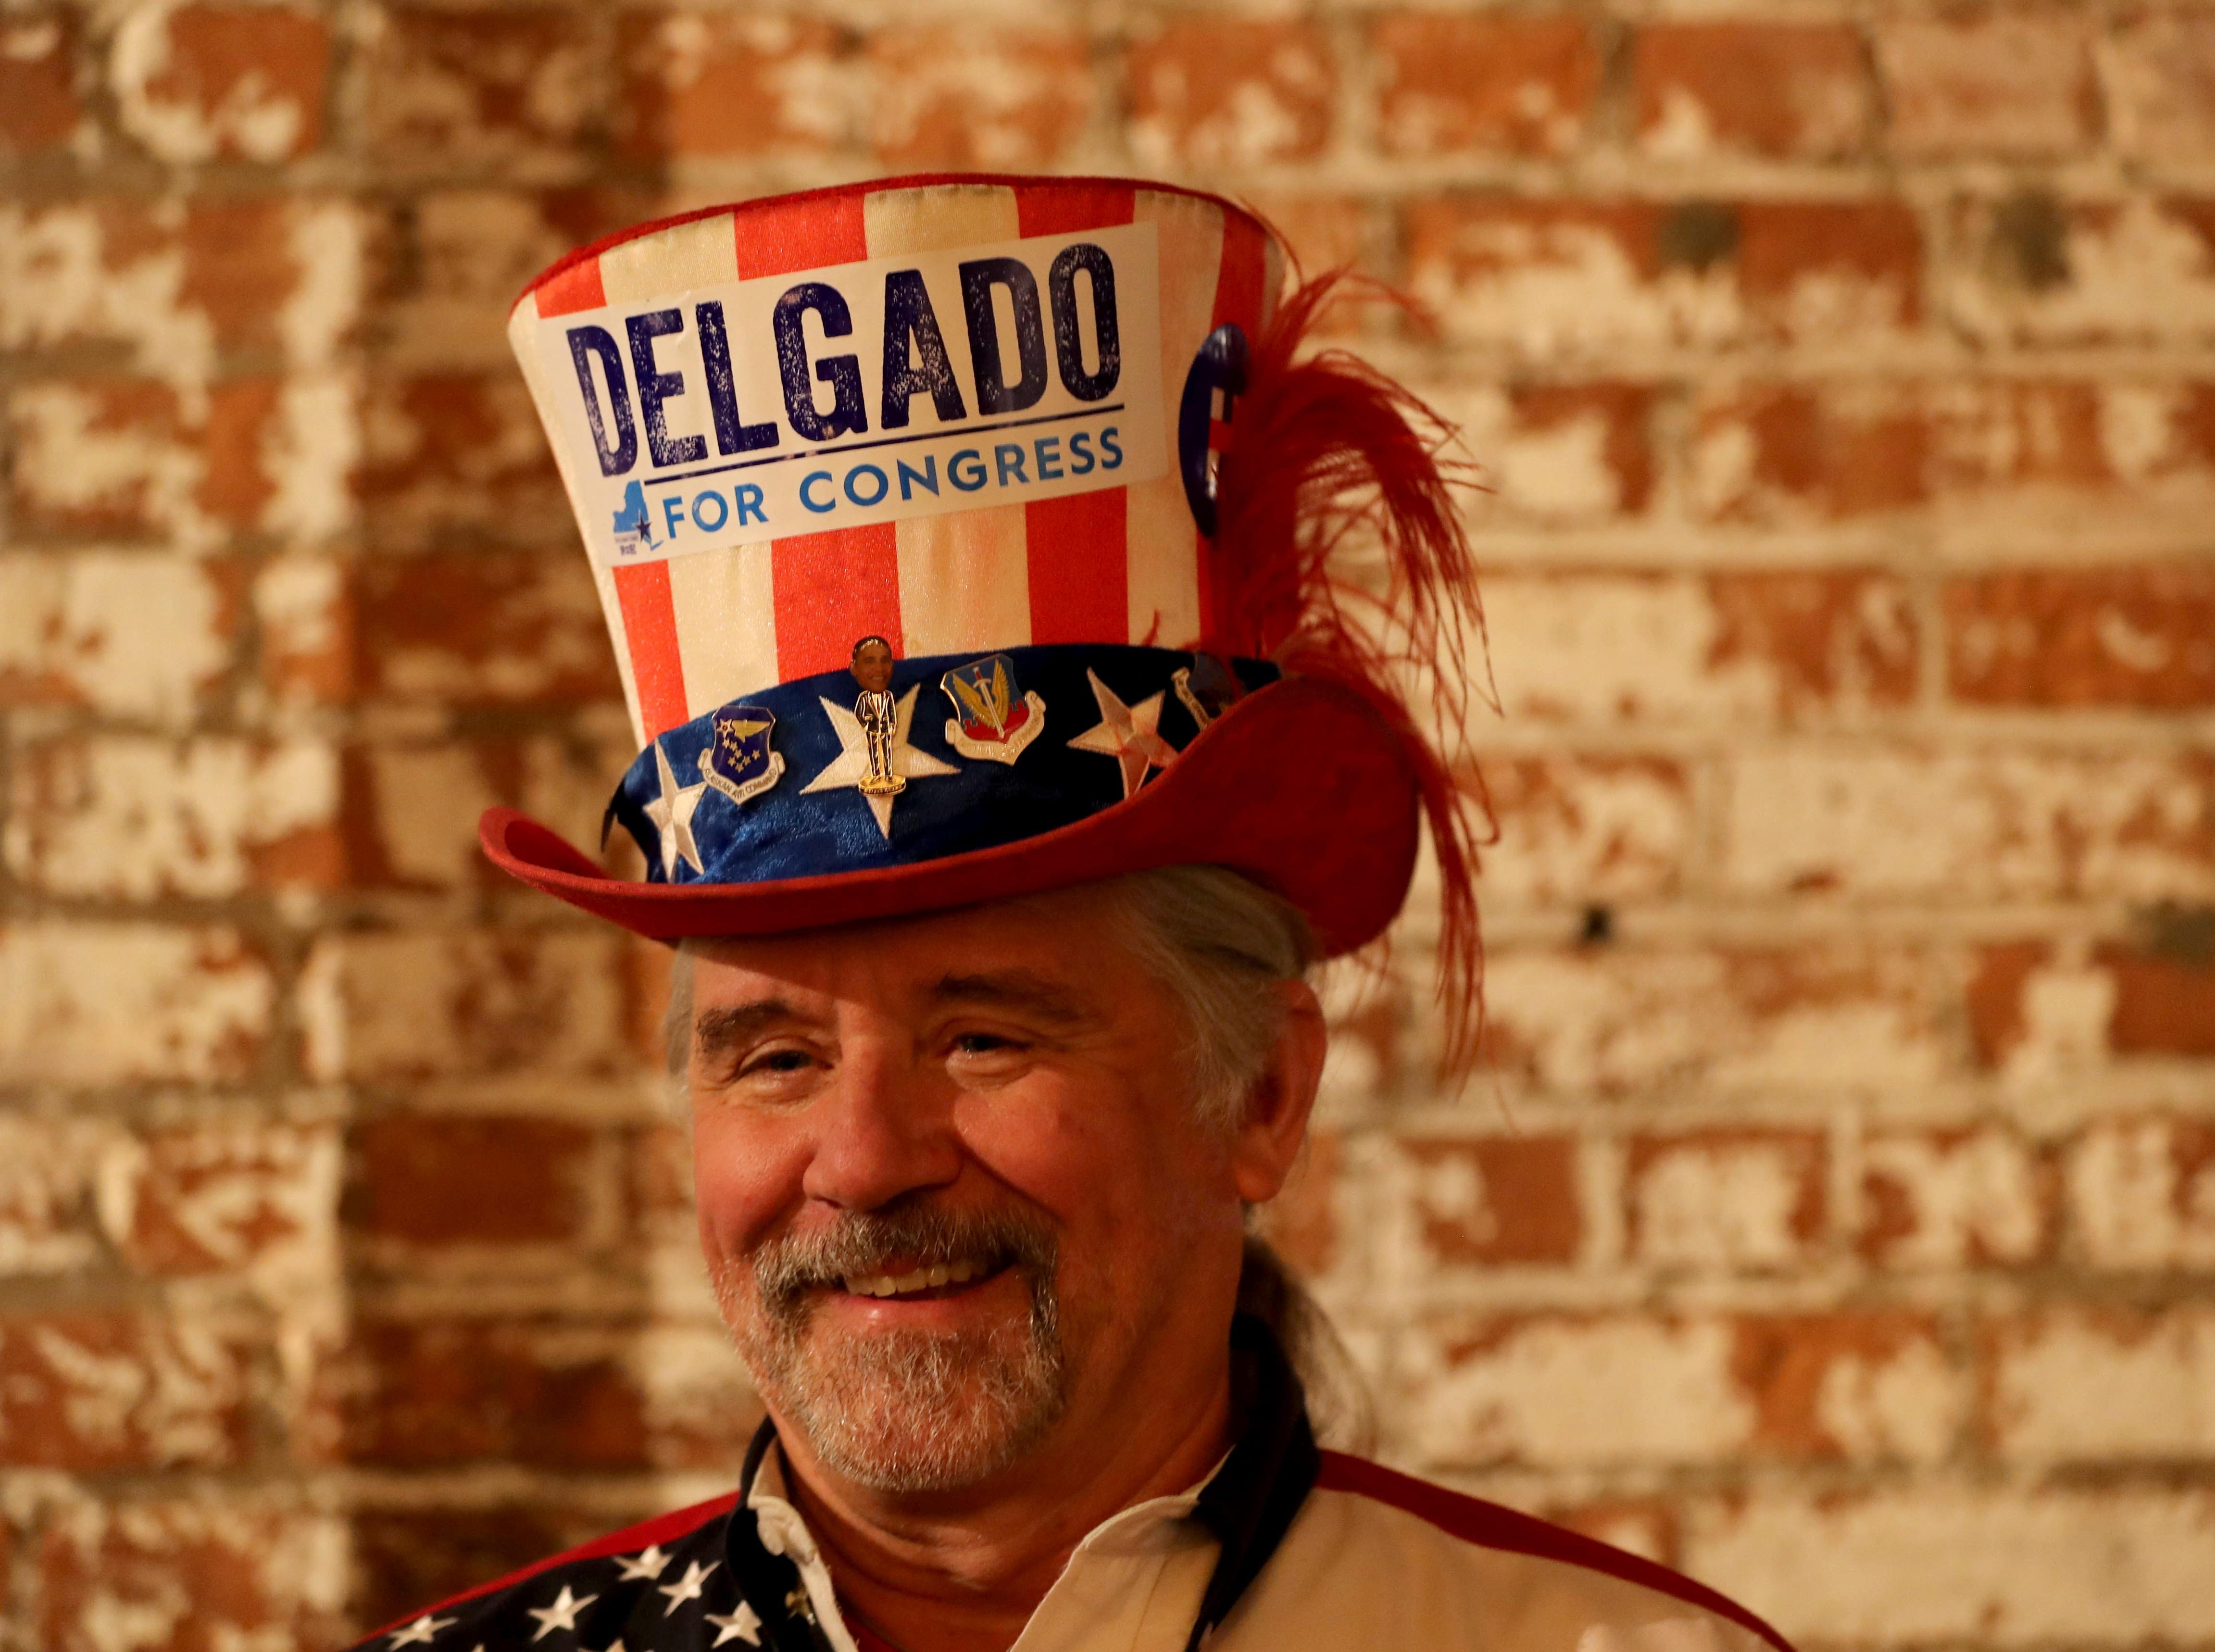 Bill Owens of Pawling, N.Y. a supporter of congressional candidate Antonio Delgado, awaits election results at the Senate Garage in Kingston, N.Y. Nov. 6, 2018. Delgado was running against incumbent Republican John Faso for New York's 19th congressional district seat.